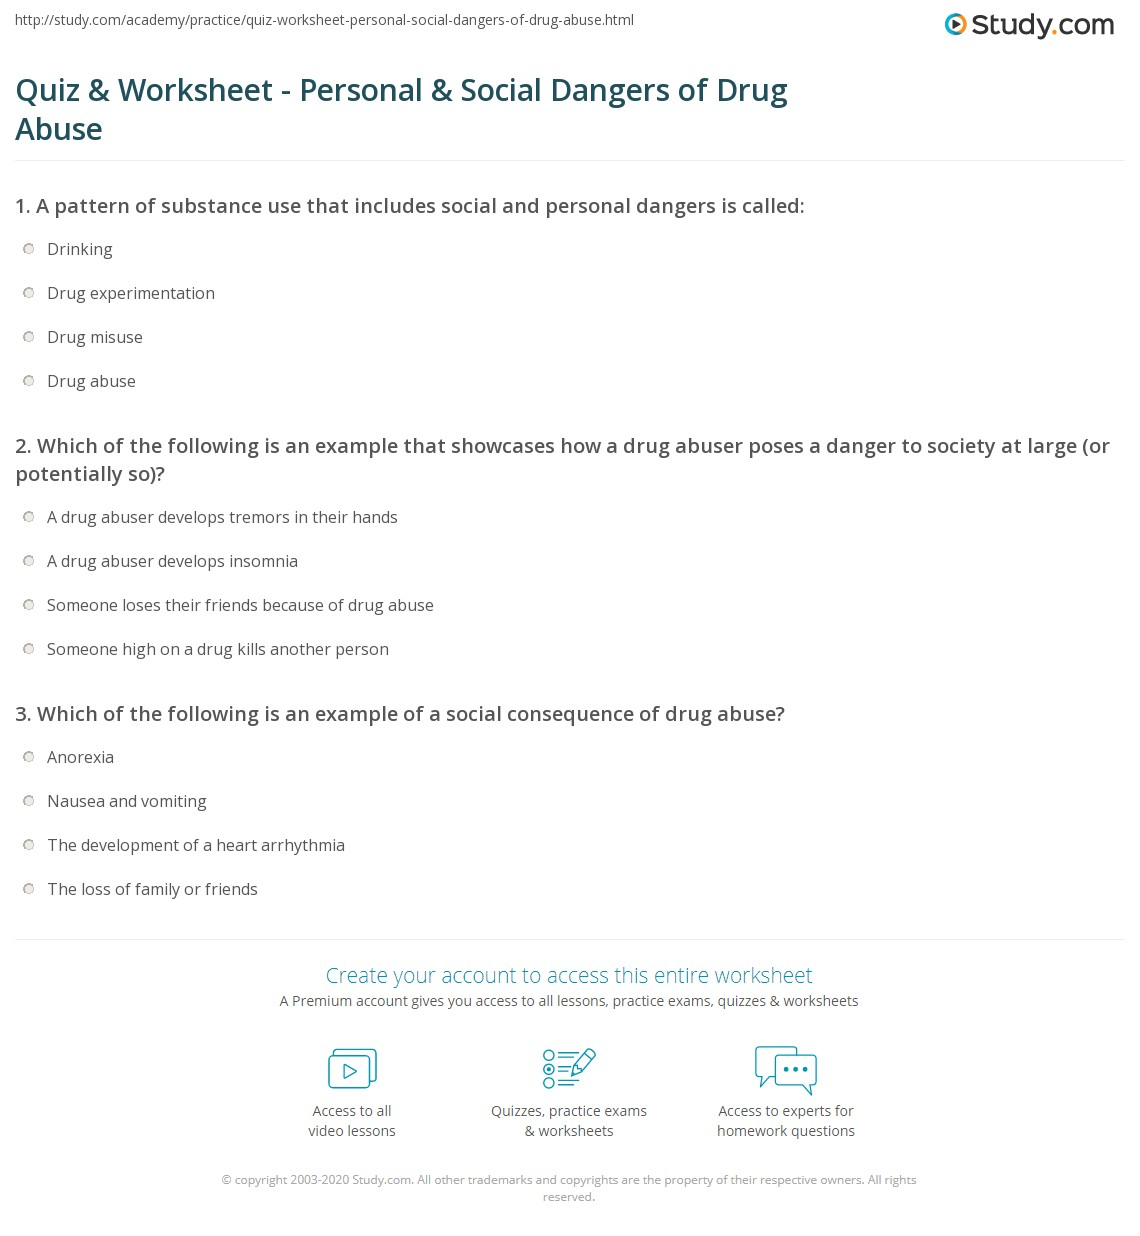 Worksheets Substance Abuse Treatment Worksheets drug addiction worksheets kristawiltbank free printable quiz worksheet personal social dangers of abuse study com print worksheet